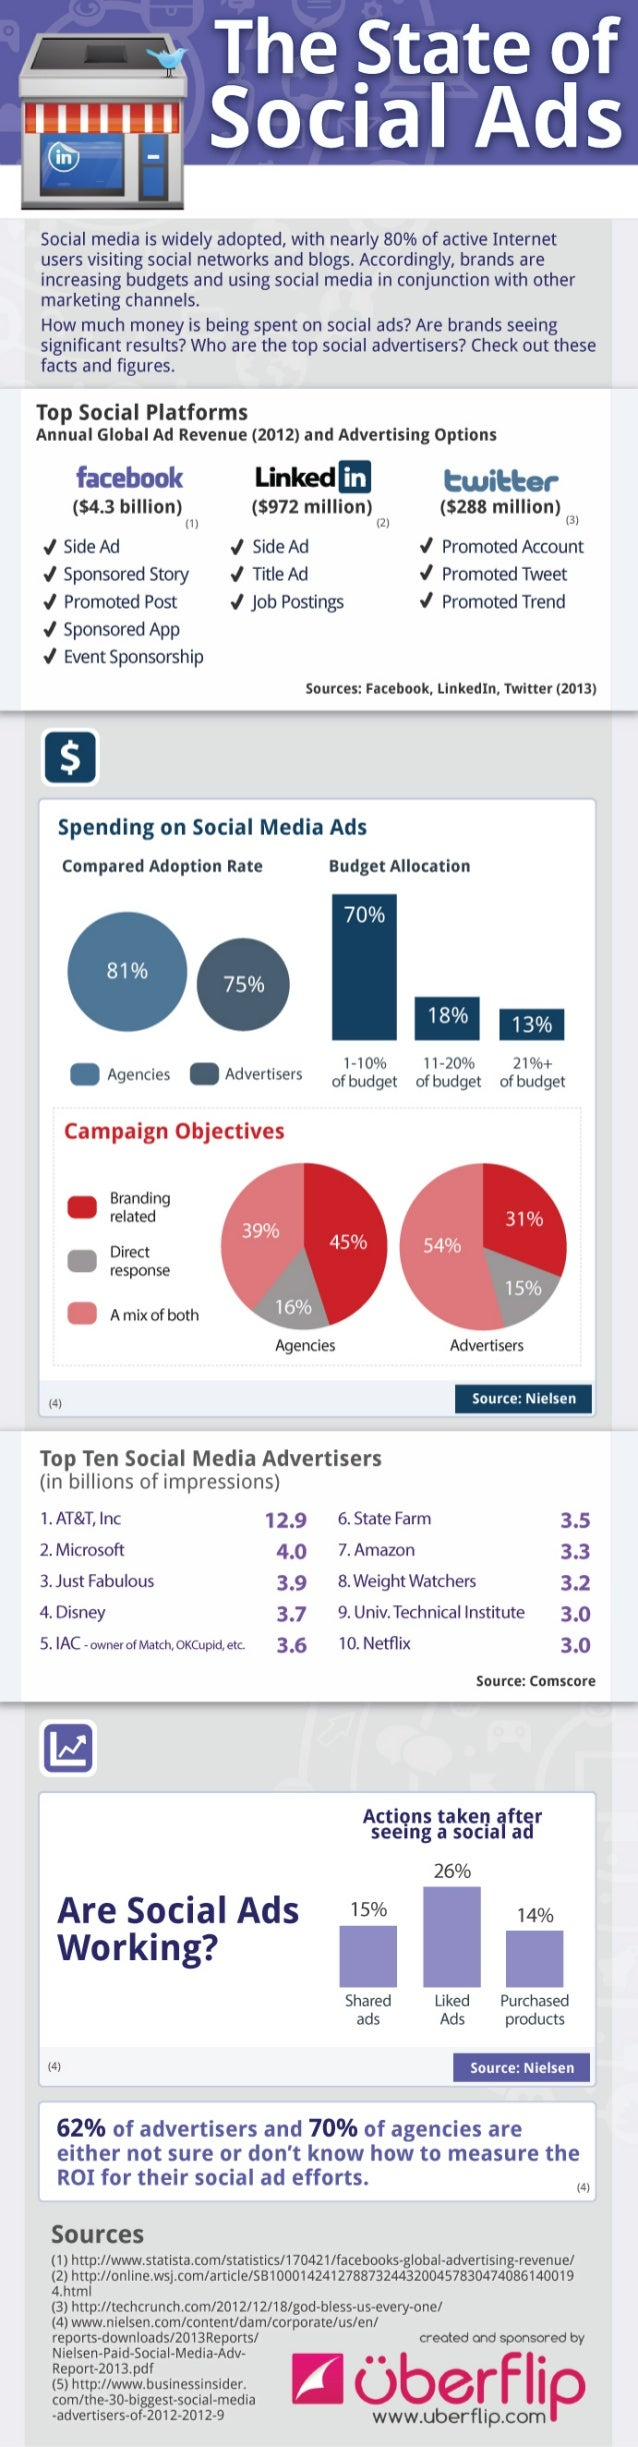 Collaborative IQ with Denise Holt - INFOGRAPHIC The State of Social Ads